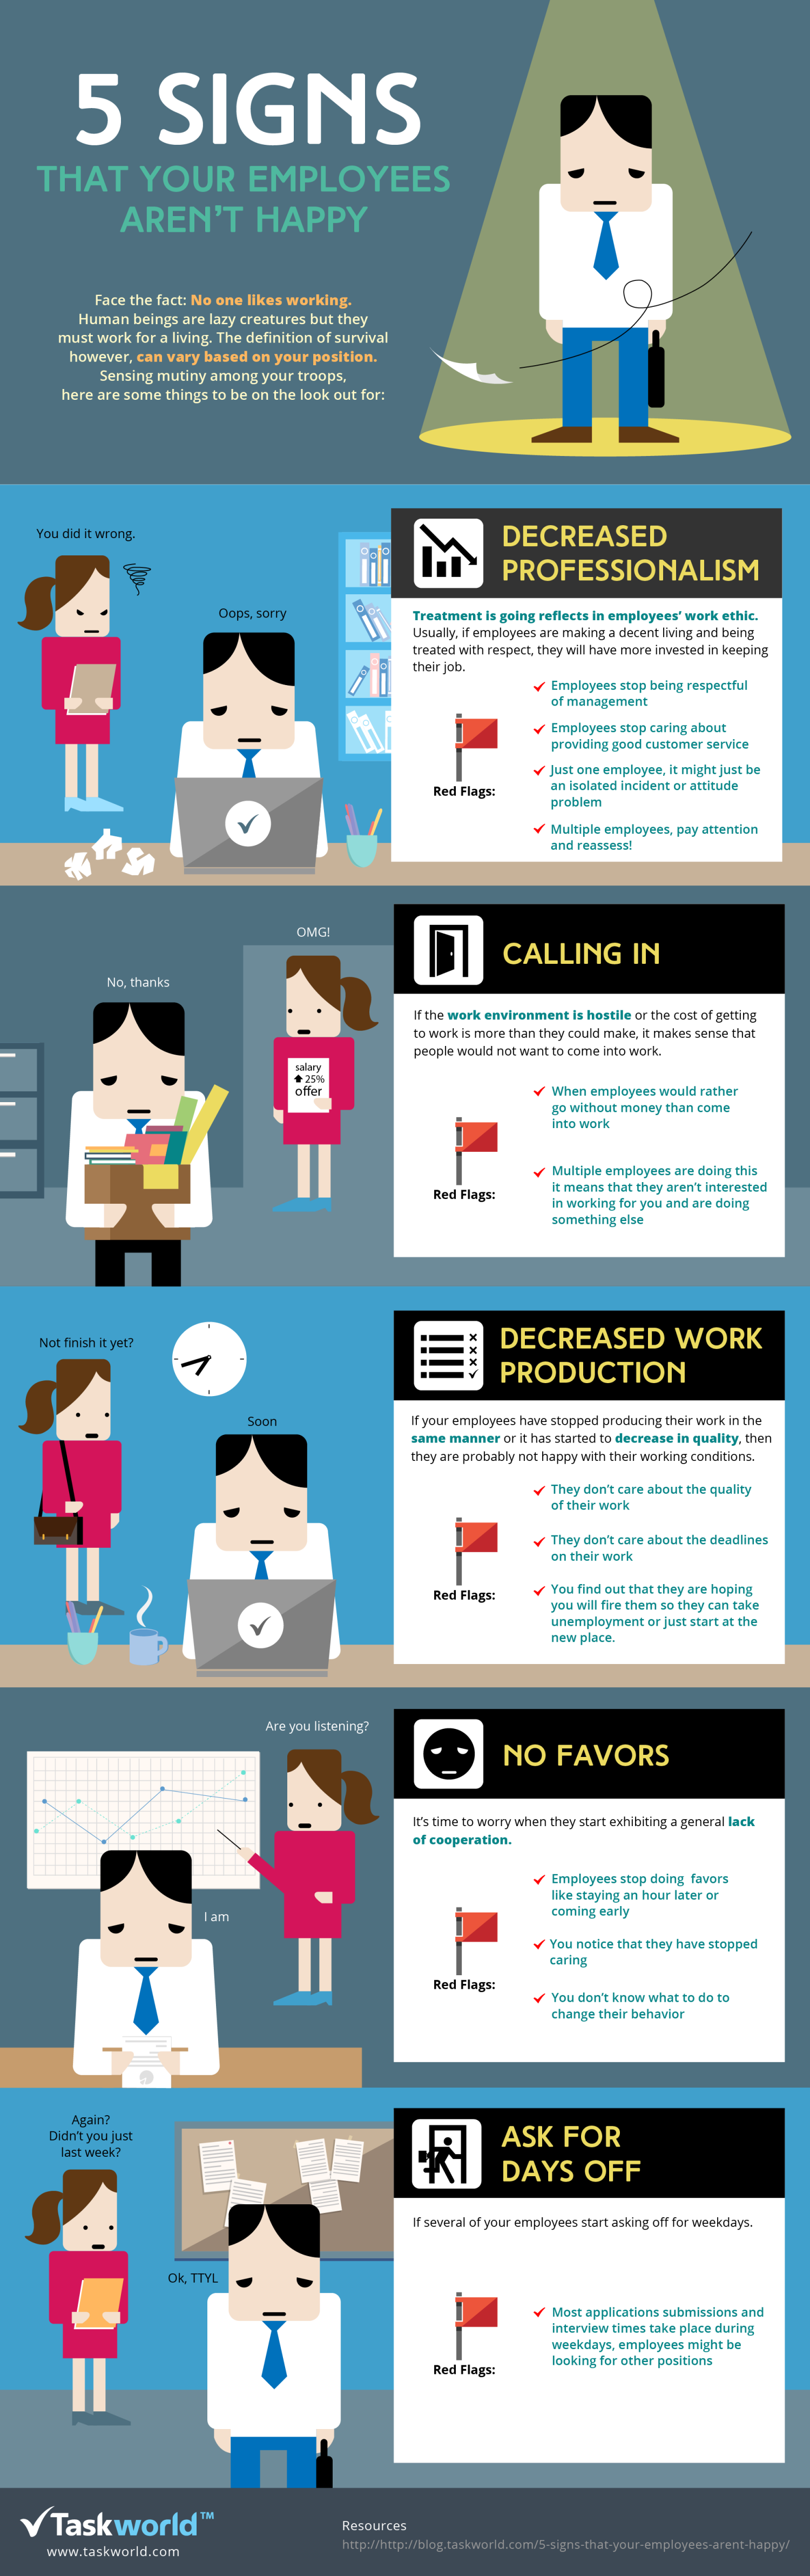 5 Signs that your Employees are Unhappy Infographic